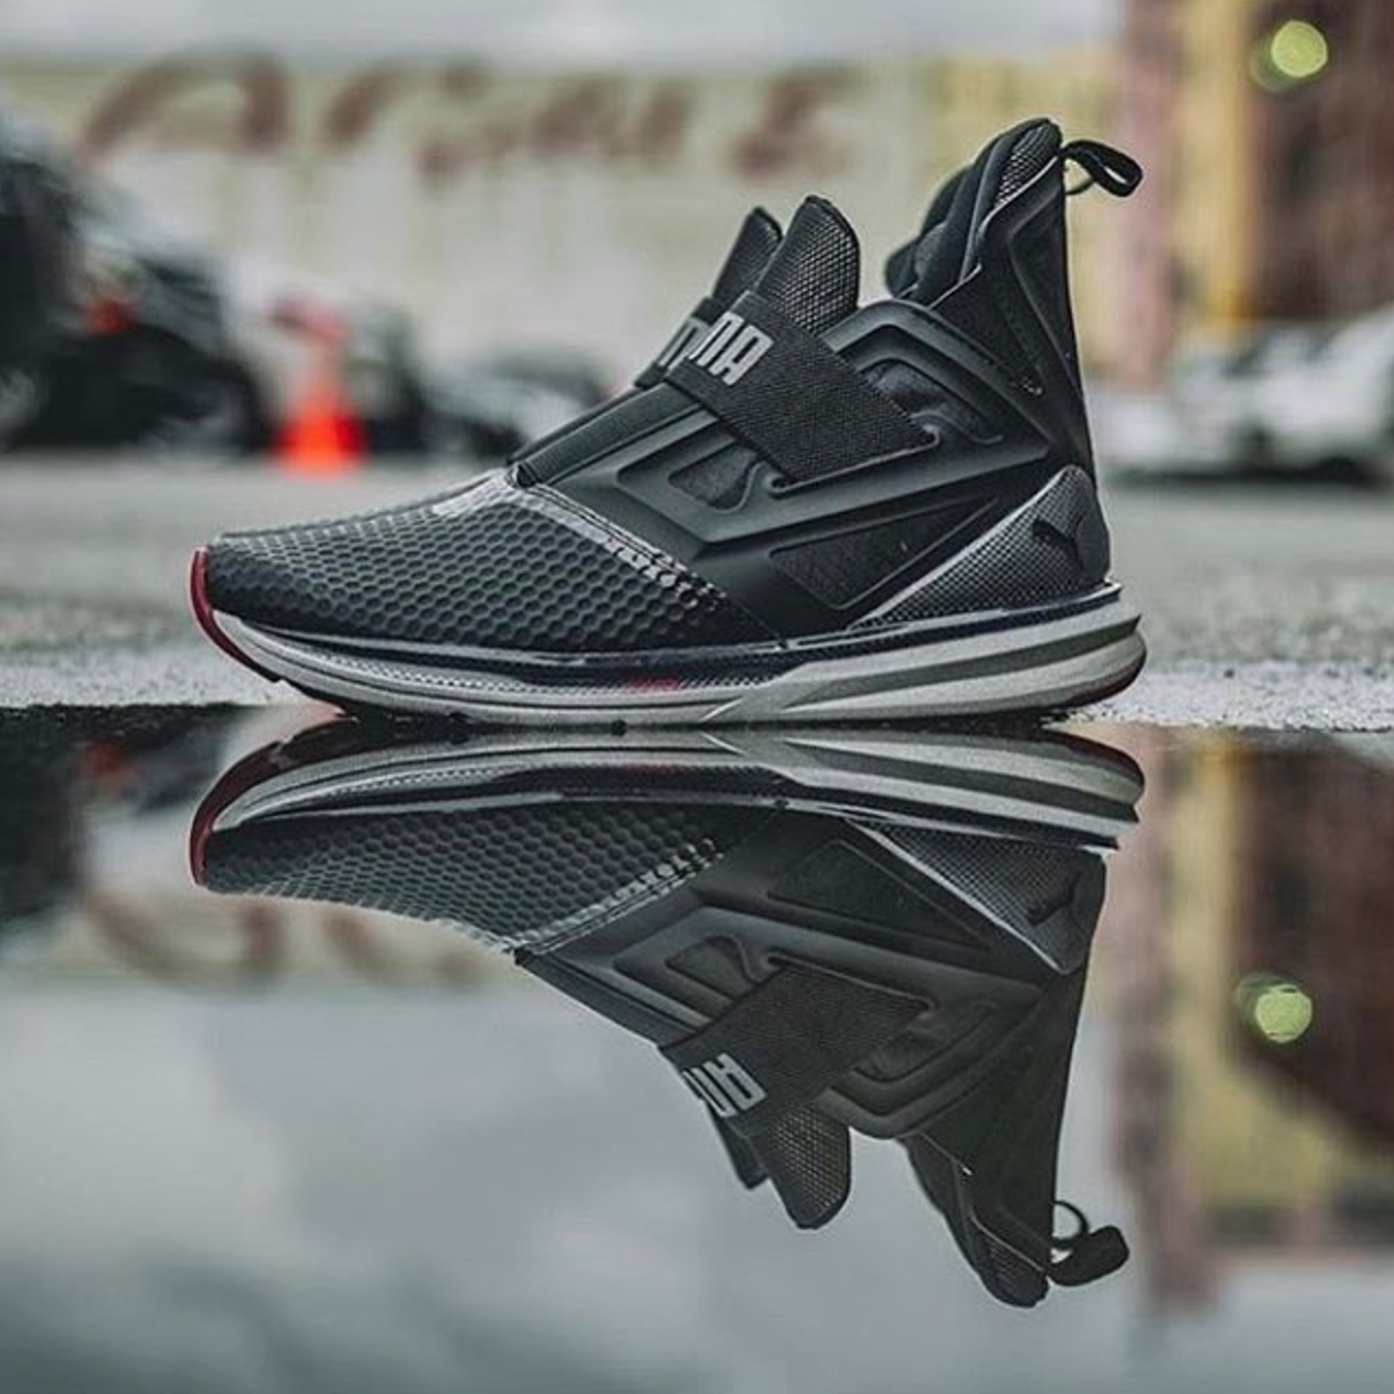 Puma Ignite Limitless Extreme